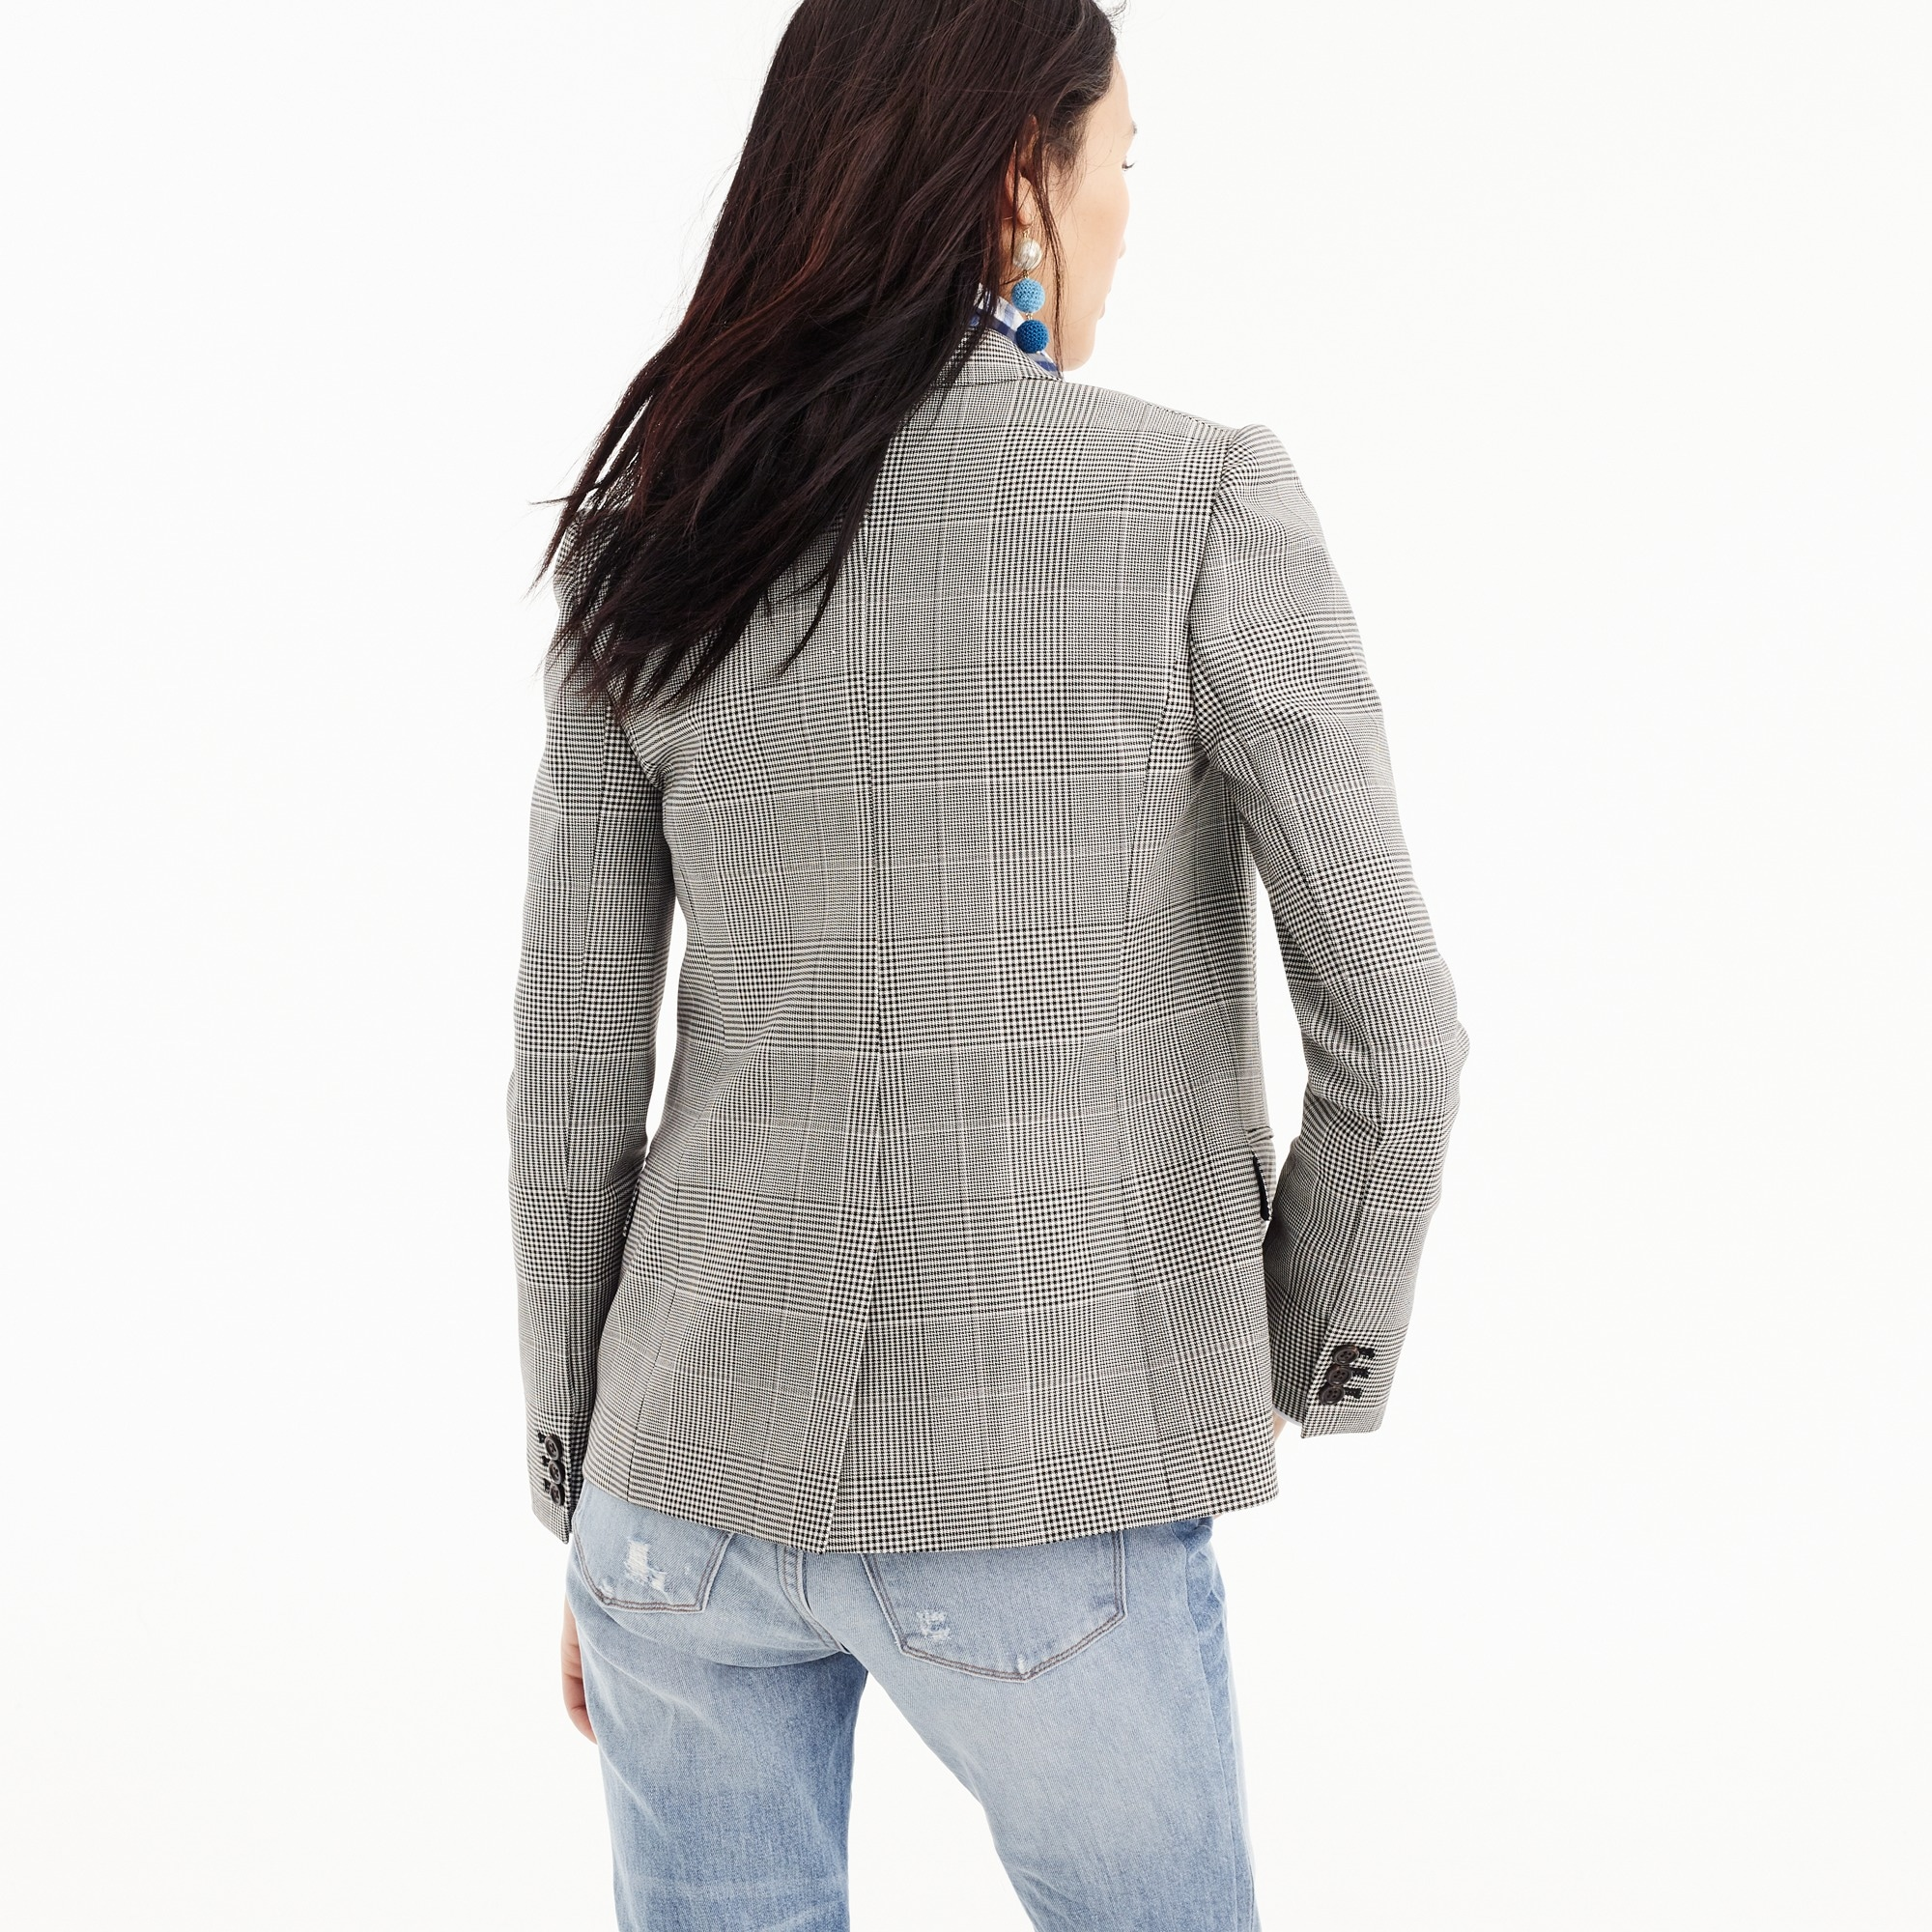 Image 4 for Dover blazer in glen plaid